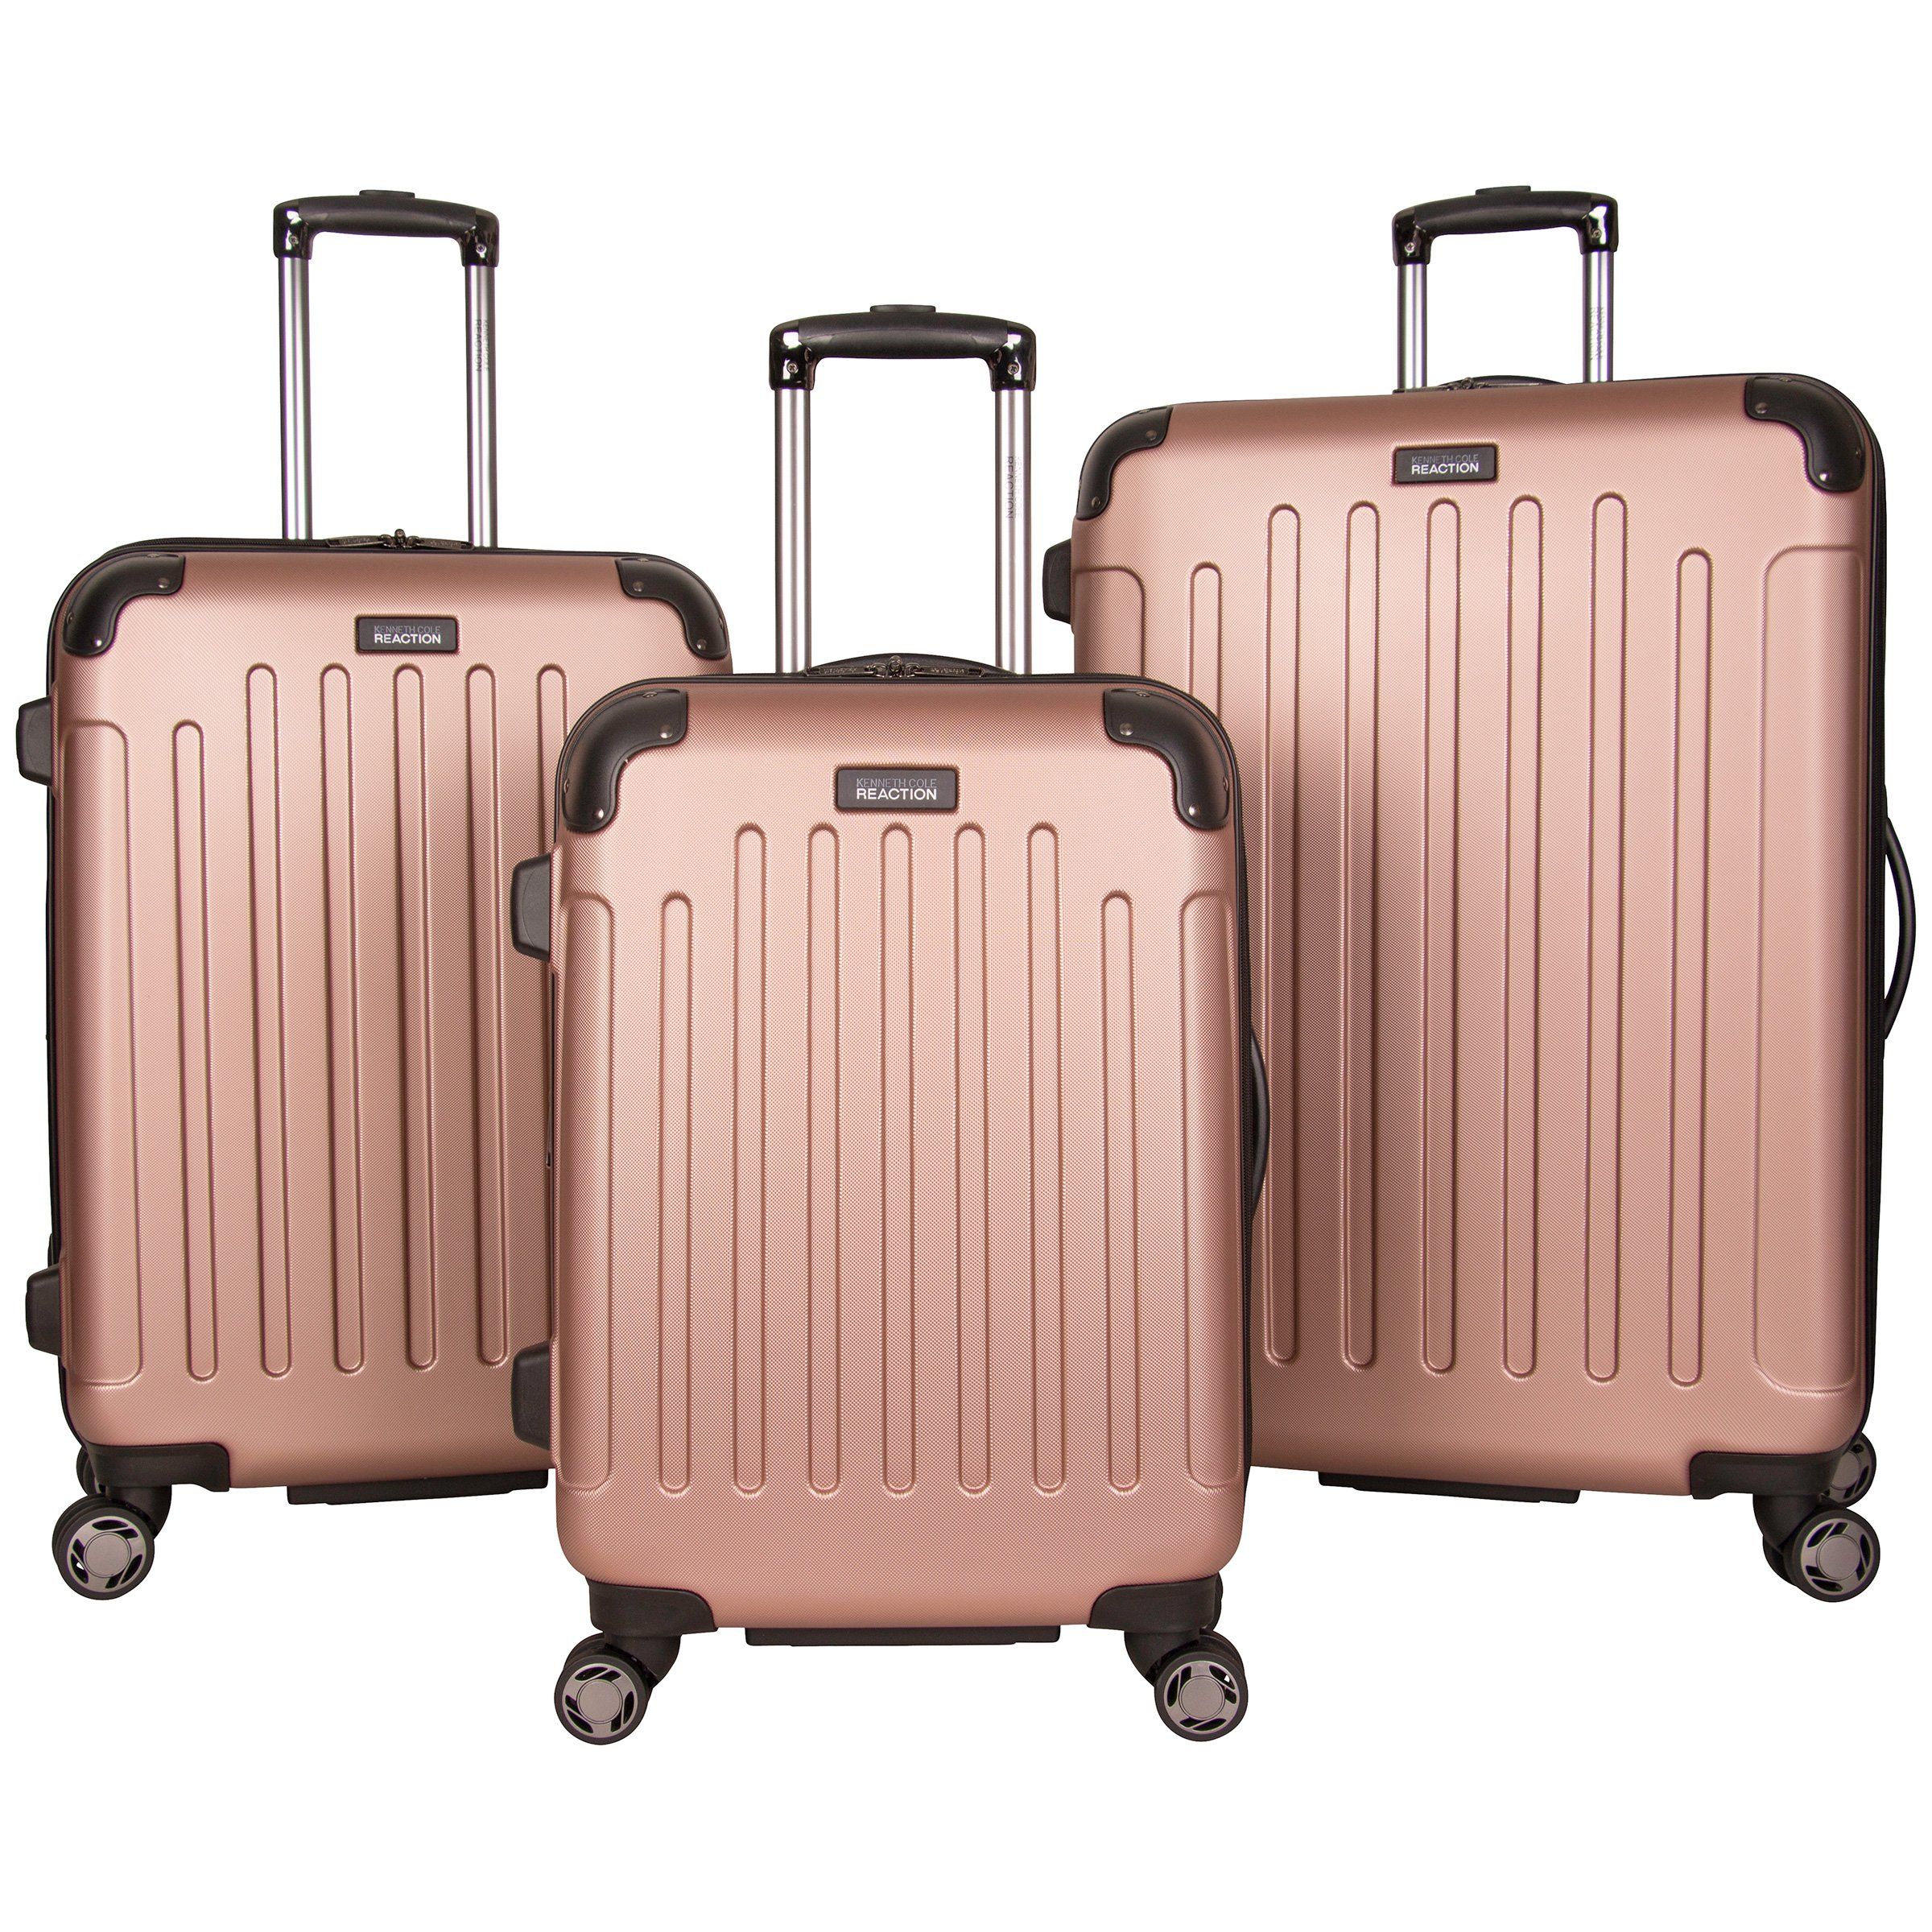 Kenneth Cole Reaction Renegade 8-Wheel Hardside Expandable 3-Piece Set: 20'' Carry-On, 24'', 28'' Luggage, Rose Gold